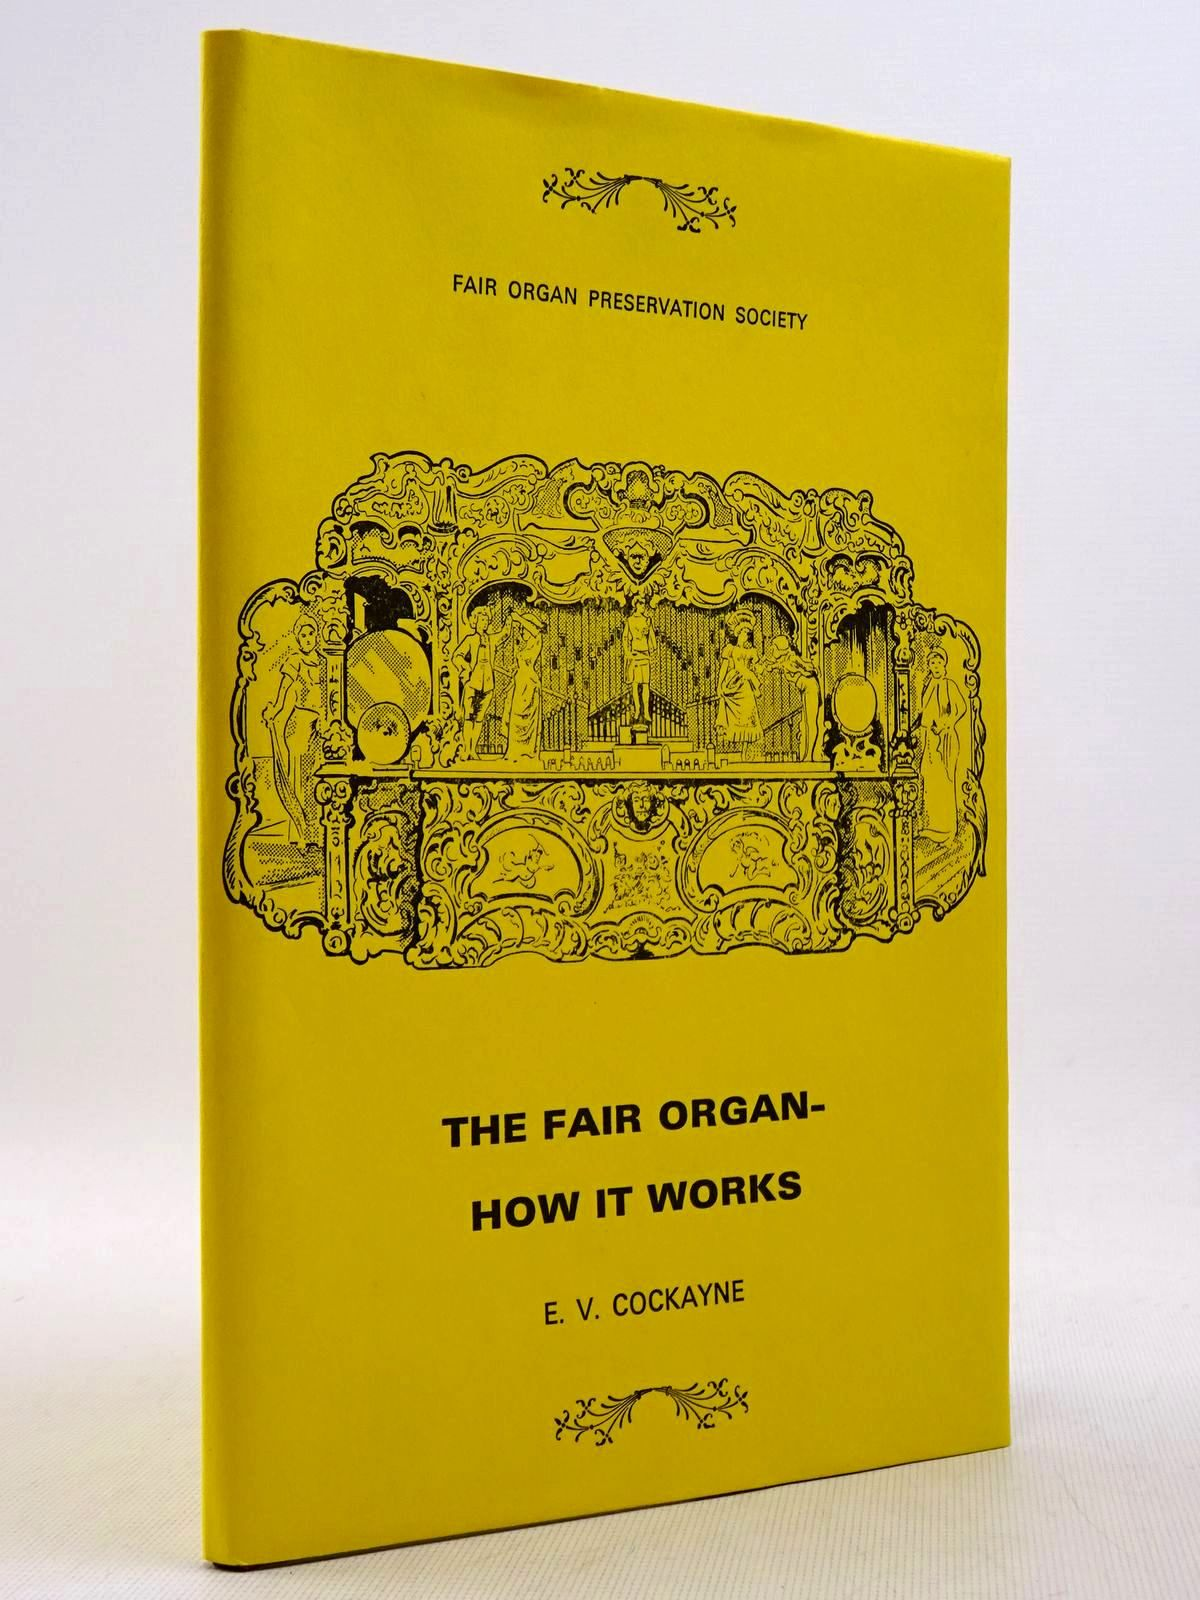 Photo of THE FAIR ORGAN - HOW IT WORKS written by Cockayne, Eric V. published by The Fair Organ Preservation Society (STOCK CODE: 2129220)  for sale by Stella & Rose's Books